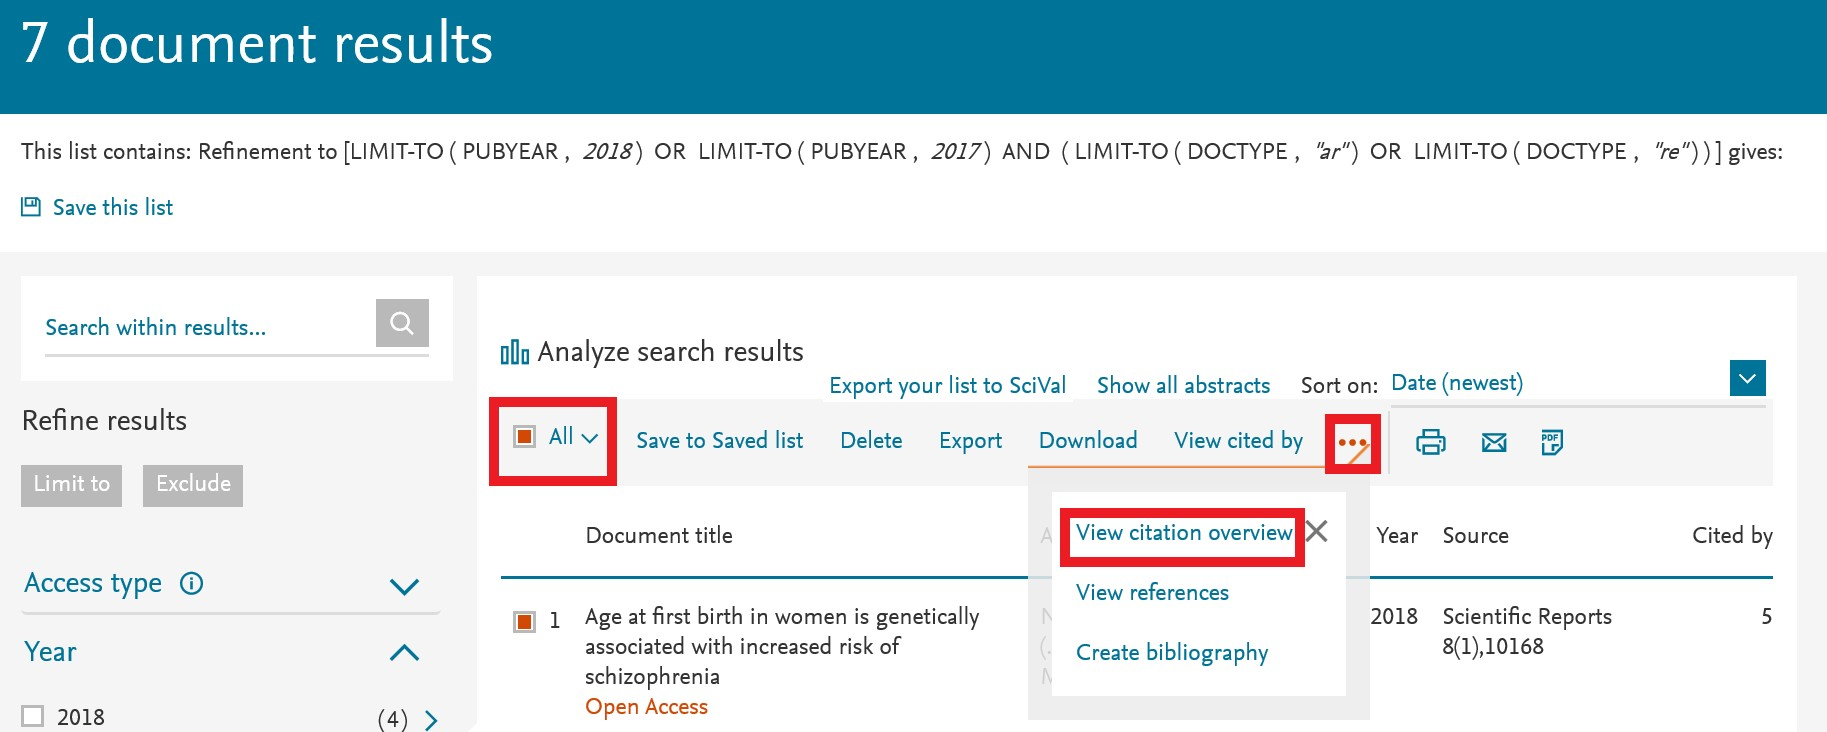 Viewing overall citations with filtered results